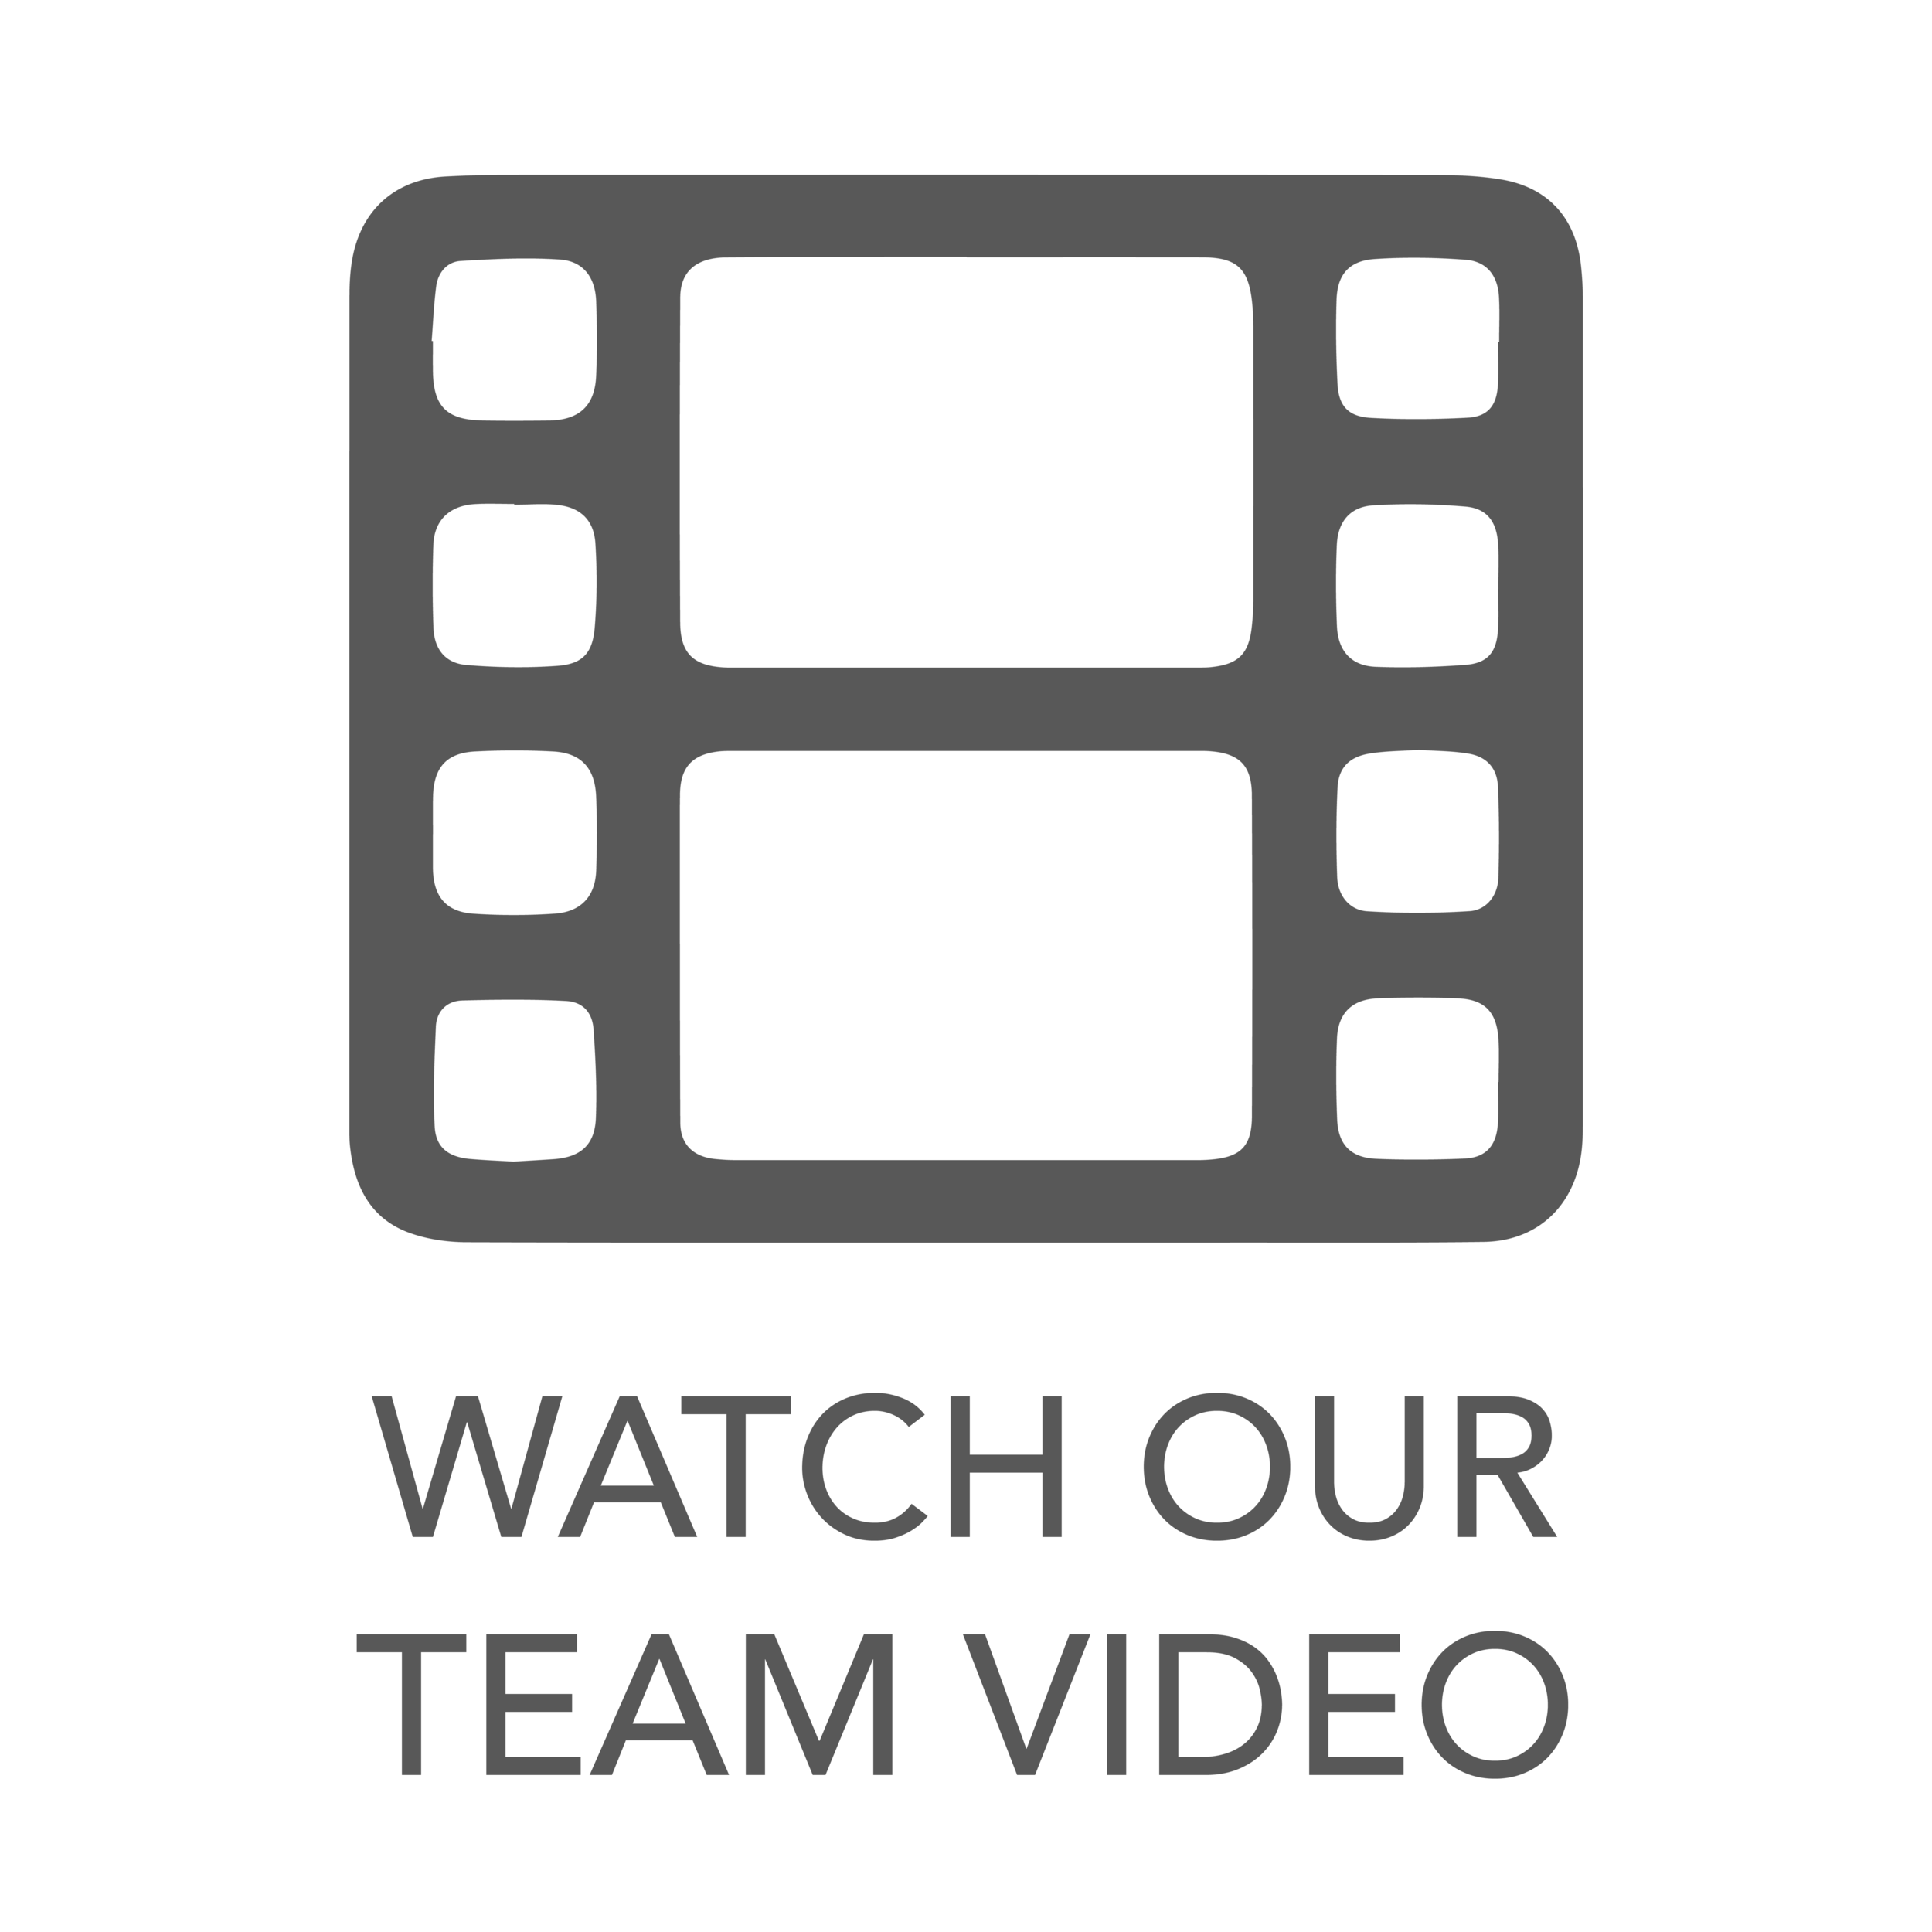 watchourteamvideo.png